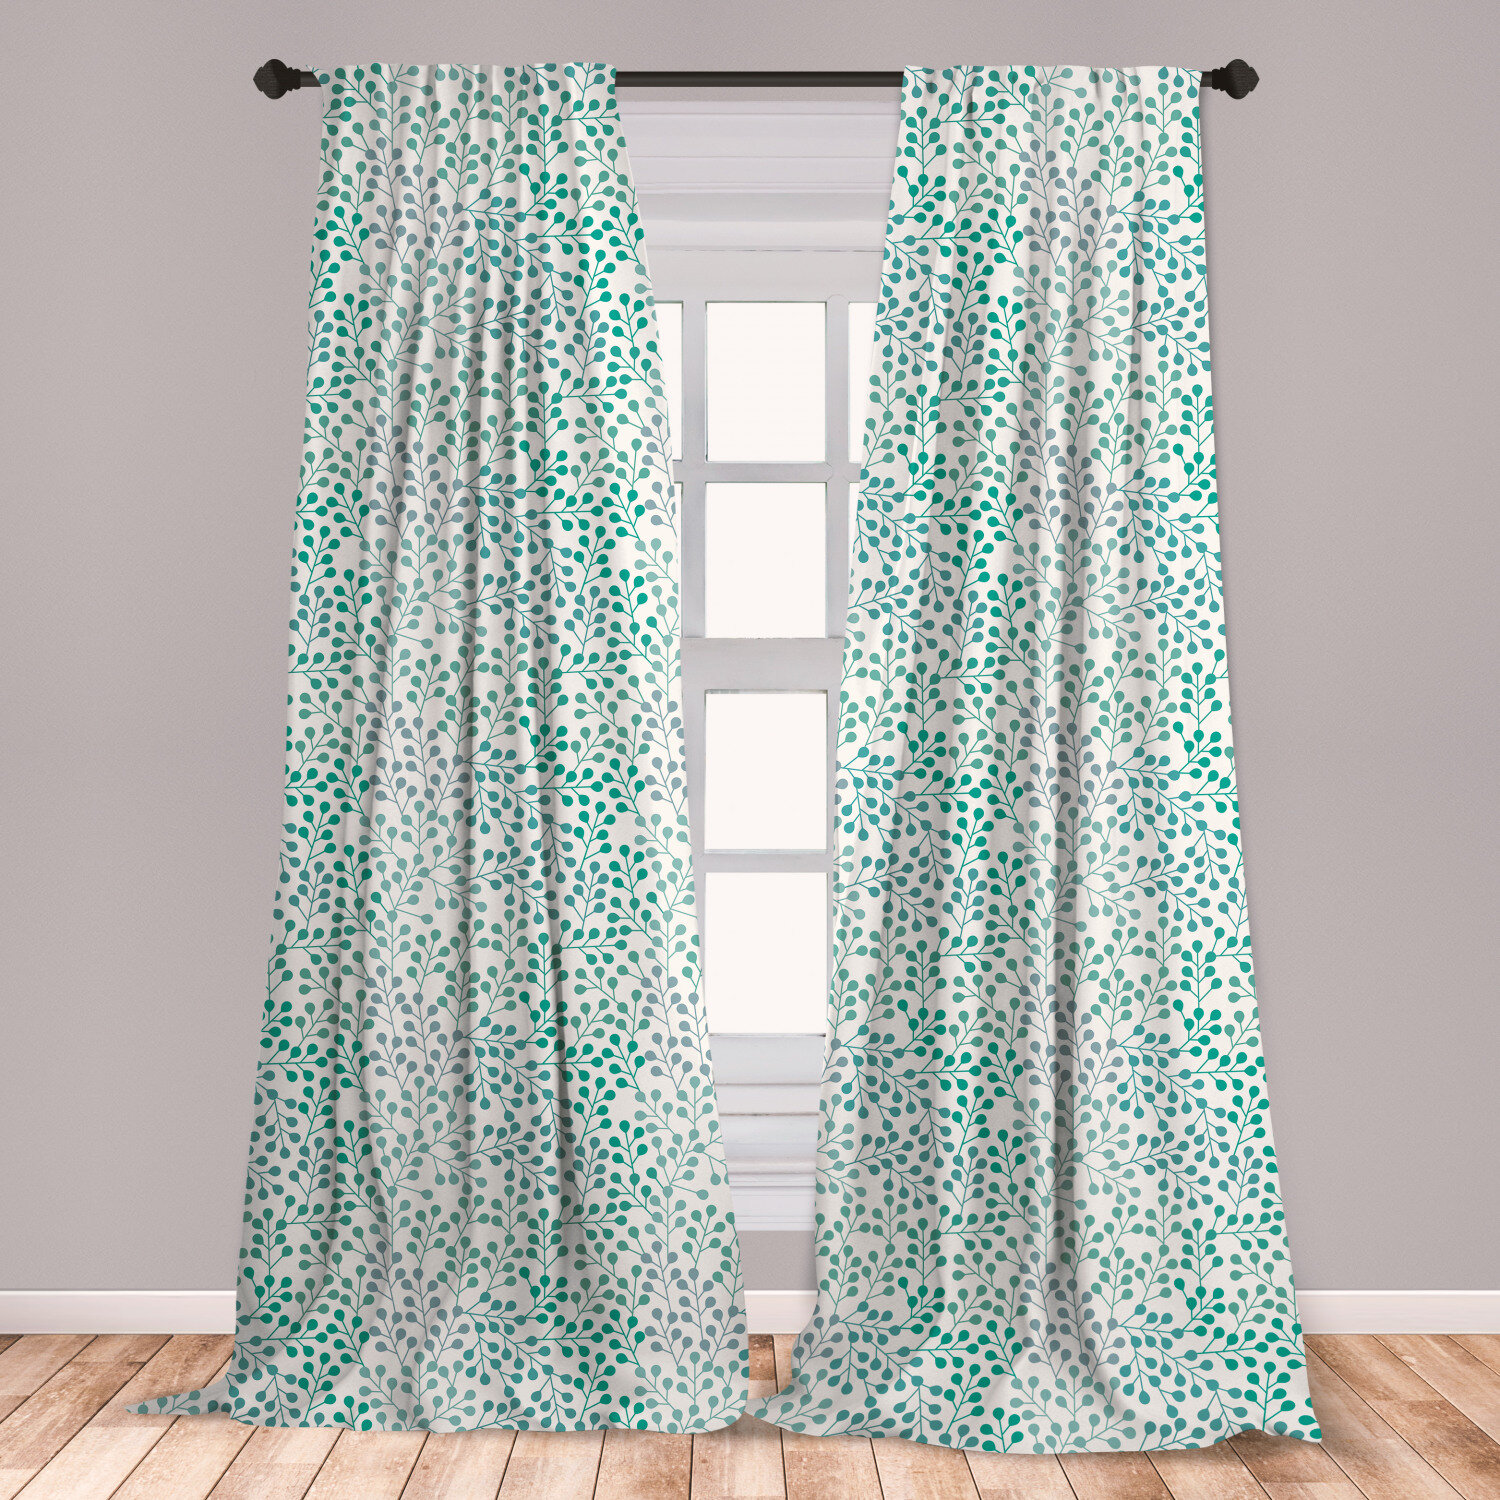 East Urban Home Ancel Leaves 2 Panel Curtain Set Flowering Branches Gentle Spring Season Little Buds Romantic Cottage Ornament Lightweight Window Treatment Living Room Bedroom Decor 56 X 63 Teal Grey Cream,Most Googled Questions About God